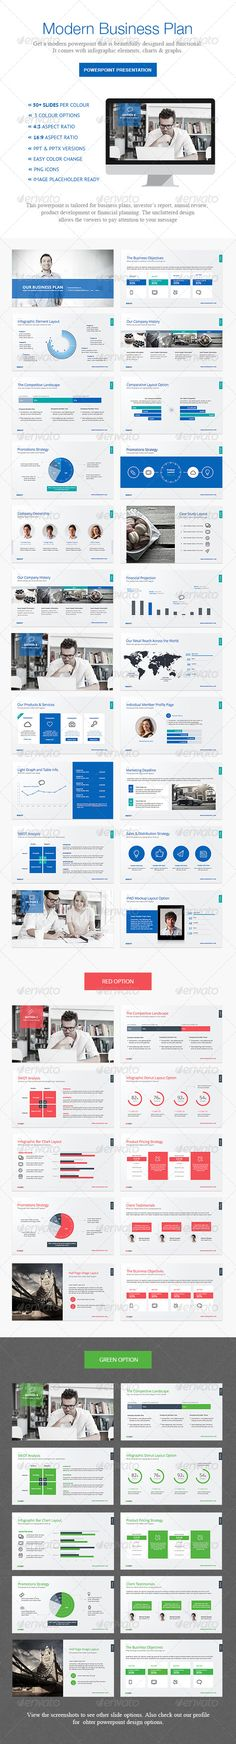 Business - Powerpoint Template http://graphicriver.net/item/business-plan-powerpoint/6098844?ref=creativetouch